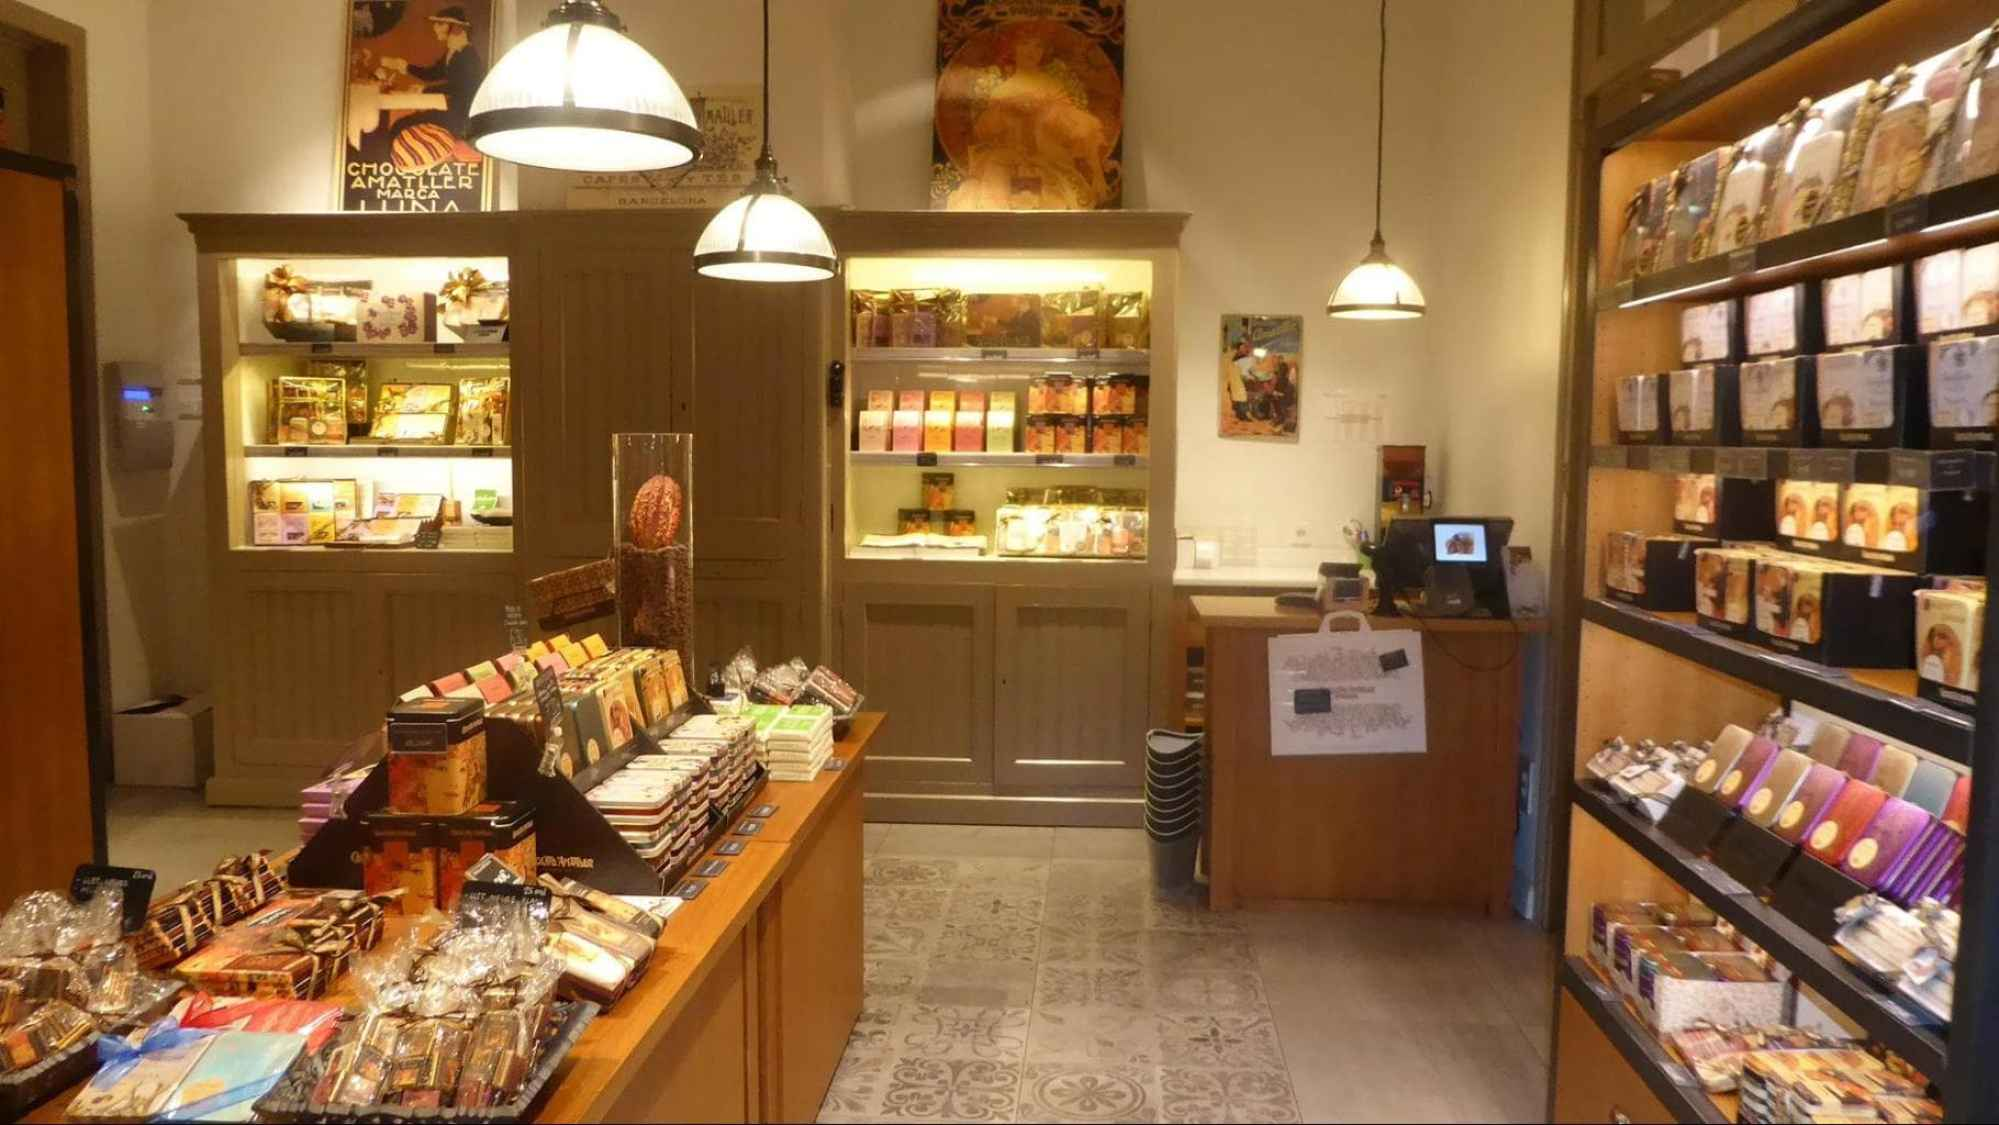 The Amatller chocolate shop inside Faborit